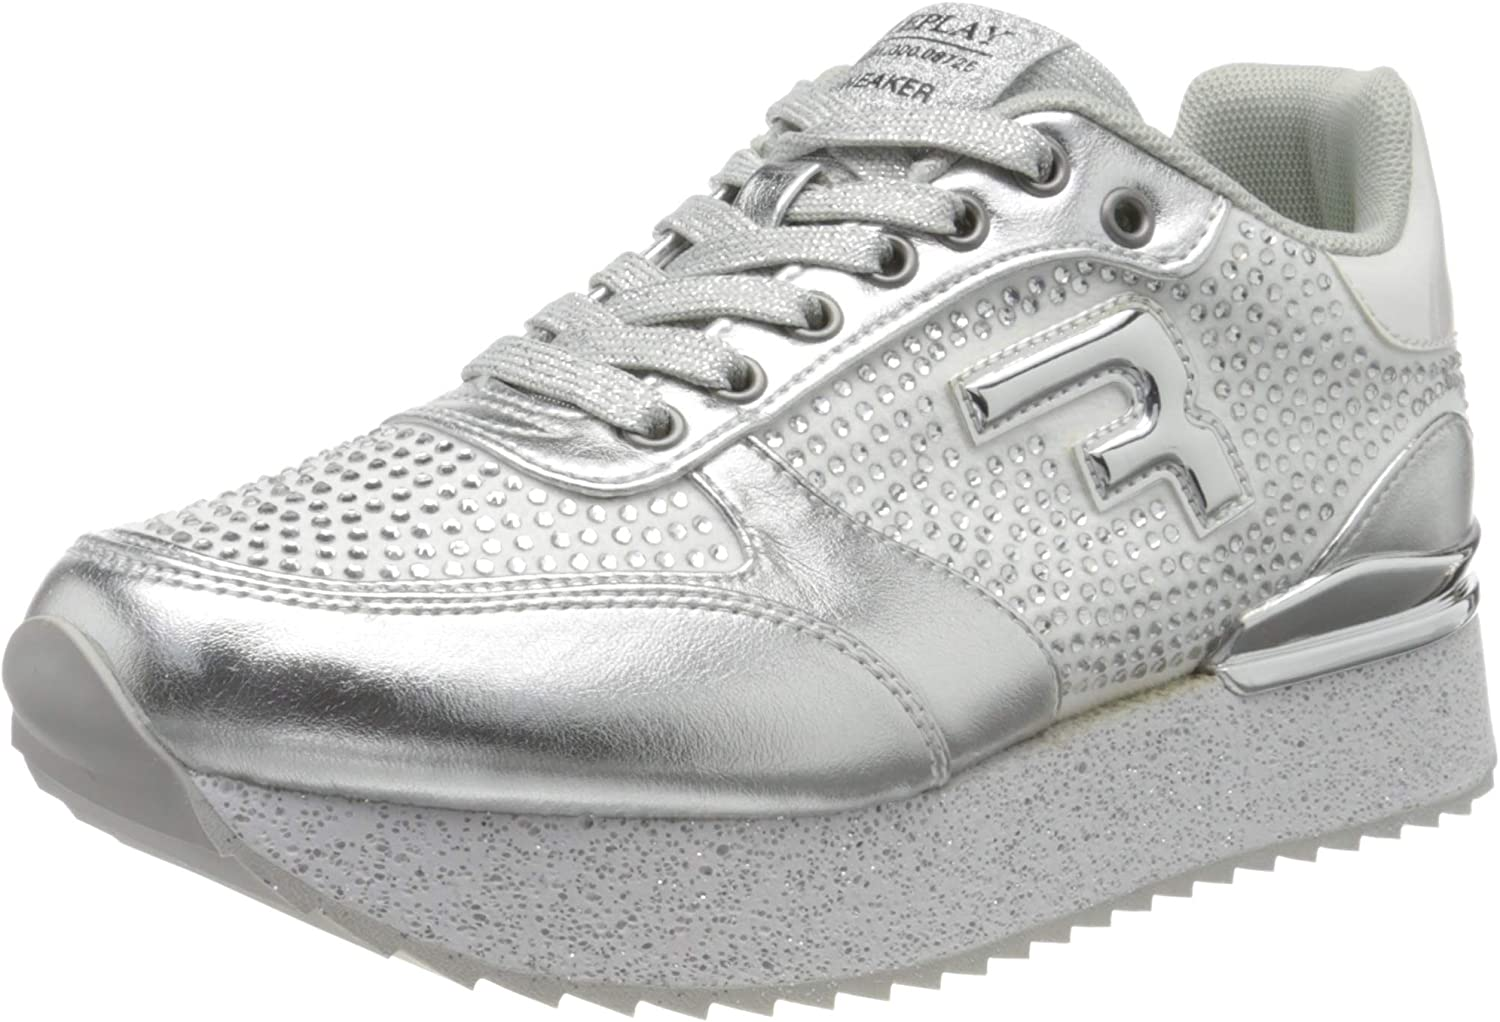 Replay Women's Sneakers We OFFer Max 55% OFF at cheap prices Low-Top